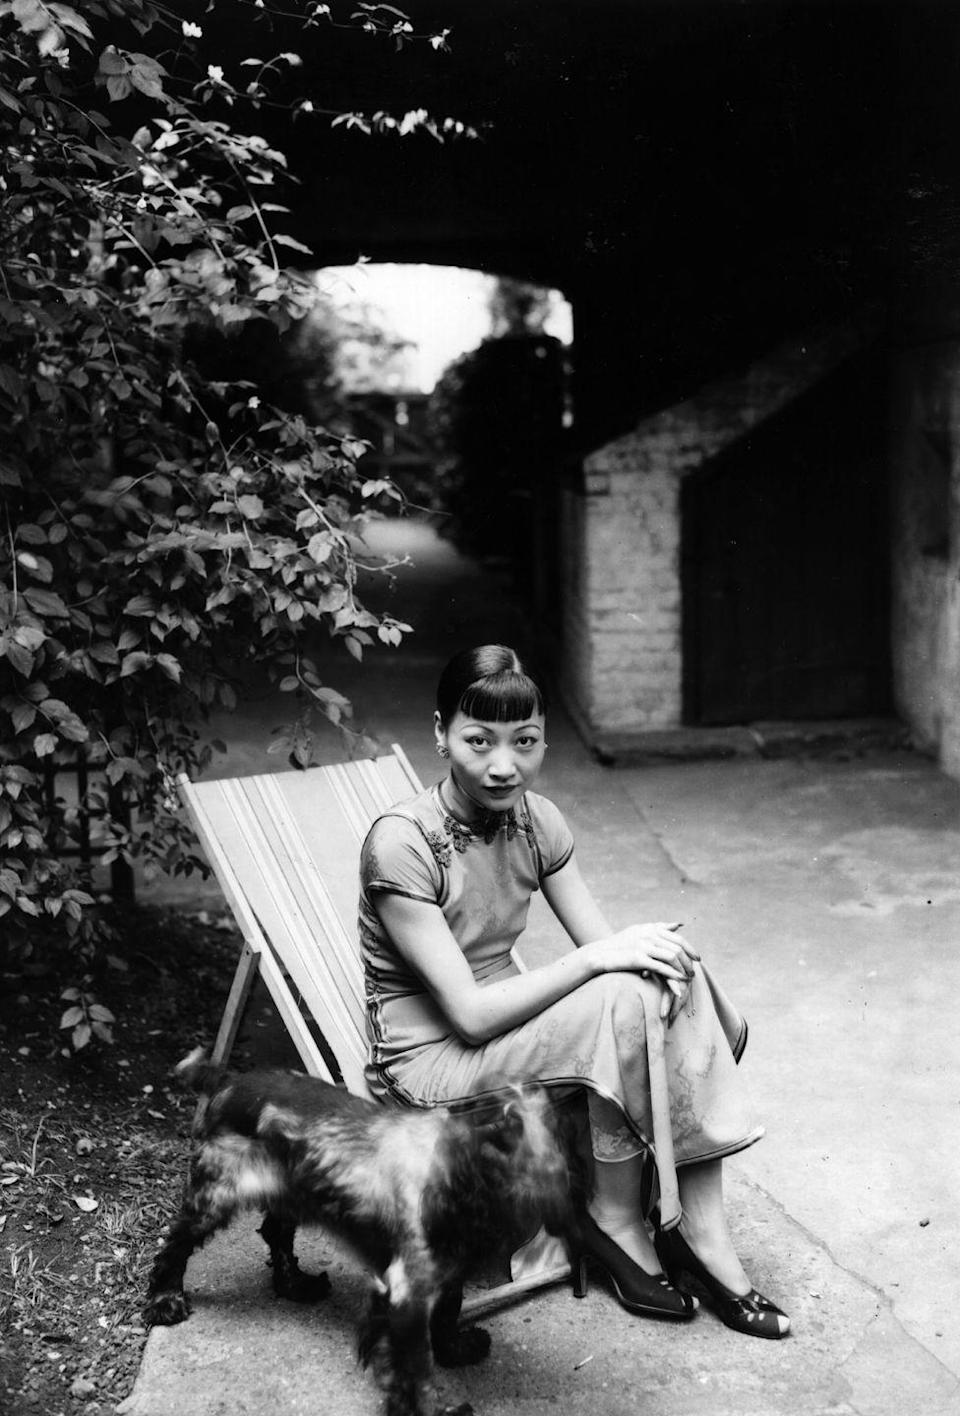 <p>In the same shoot, Wong was also photographed sitting outside with her dog. </p>